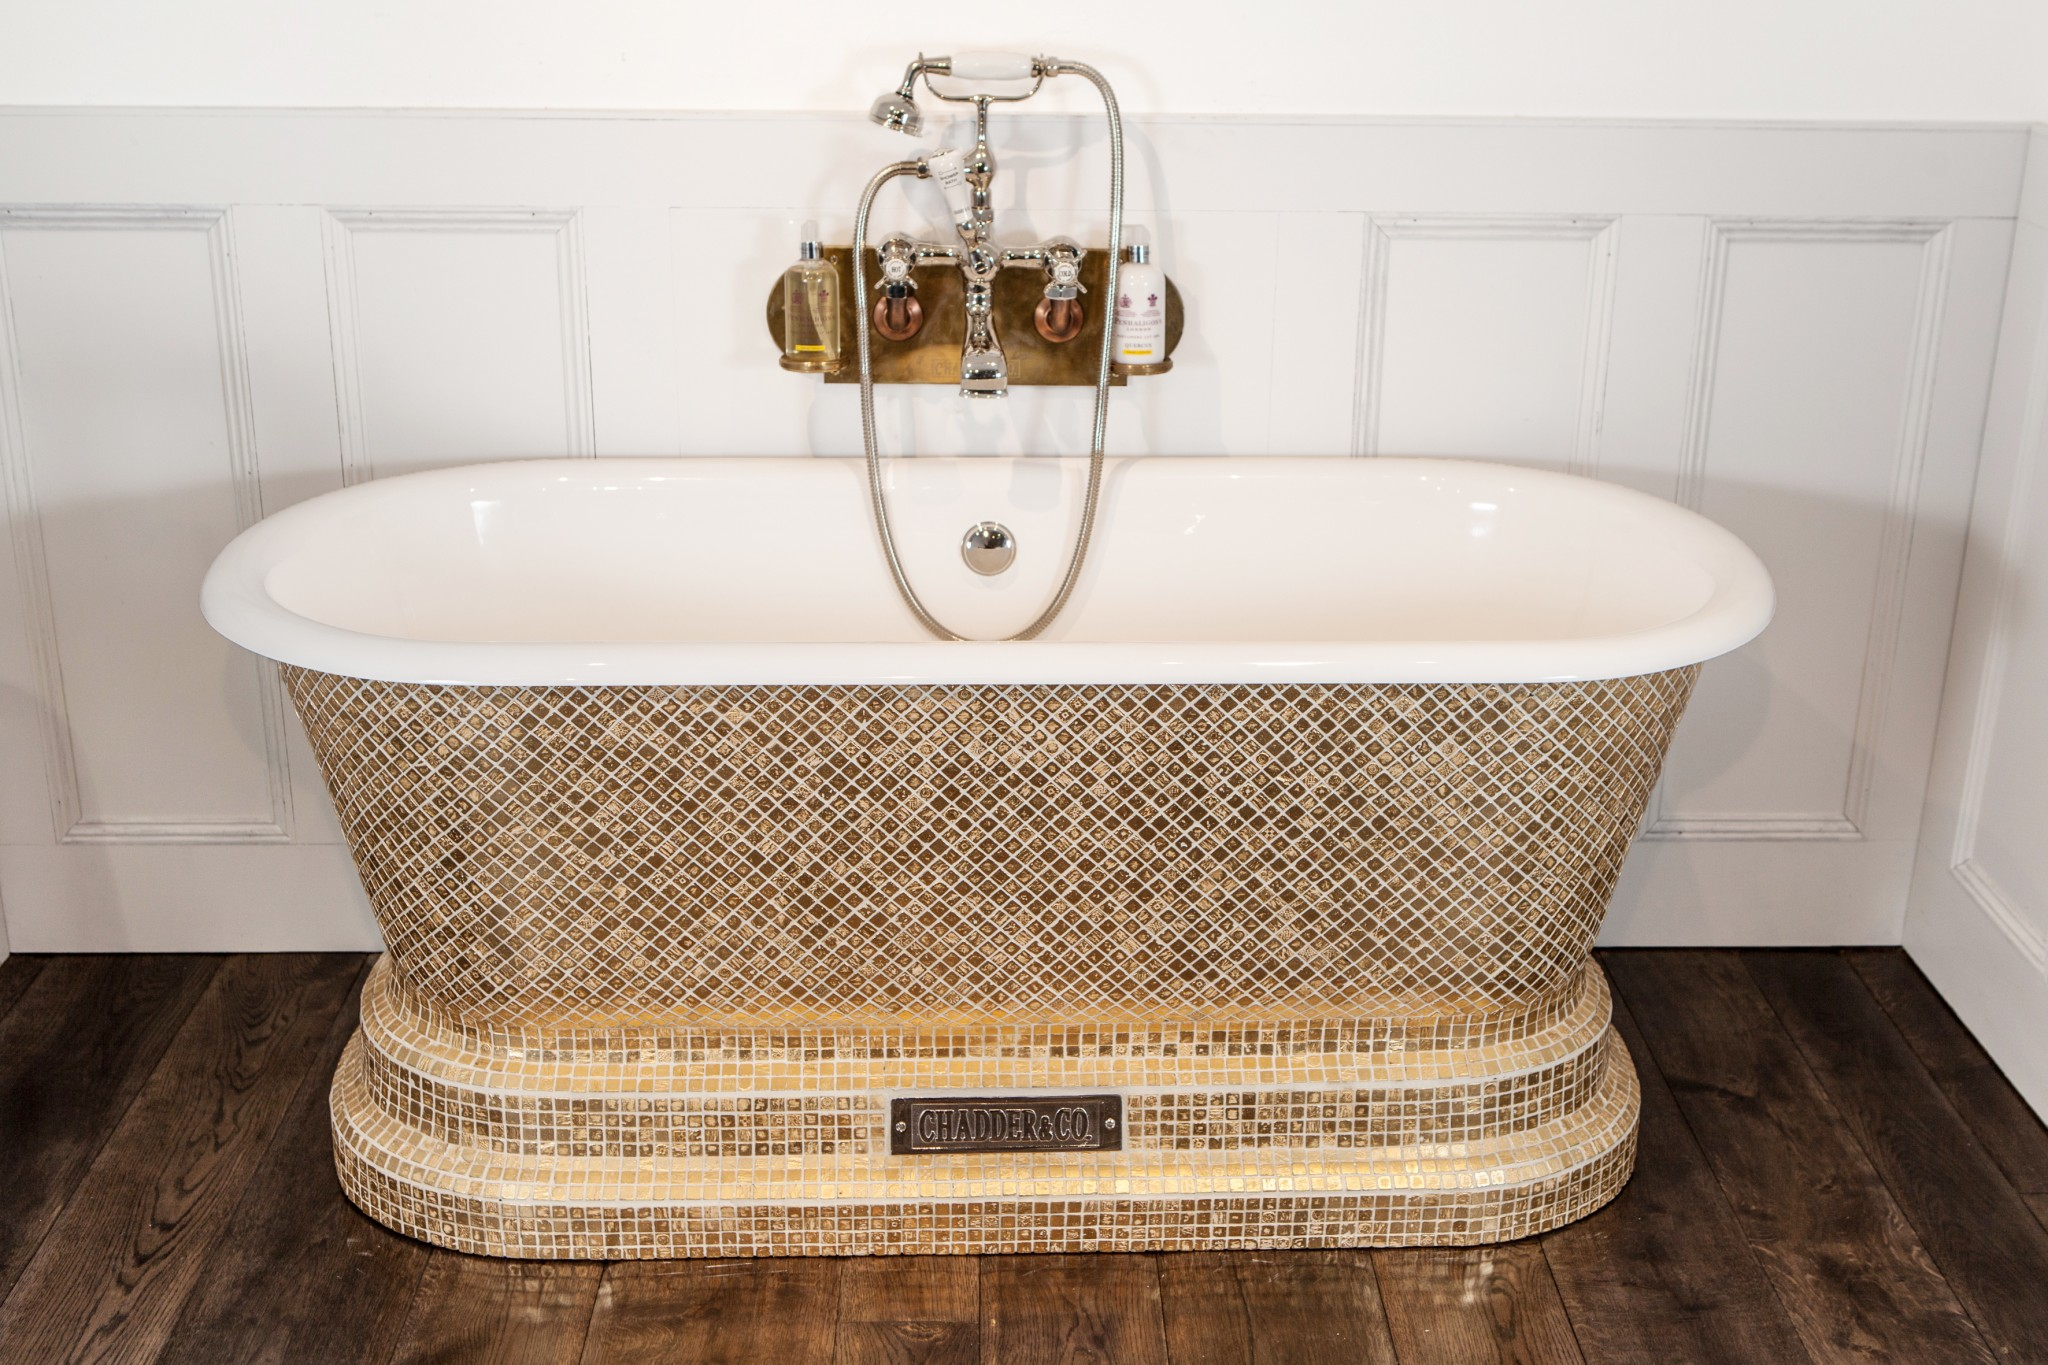 antique kitchen faucet axor windsor bath with pure gold style mosaic exterior ...